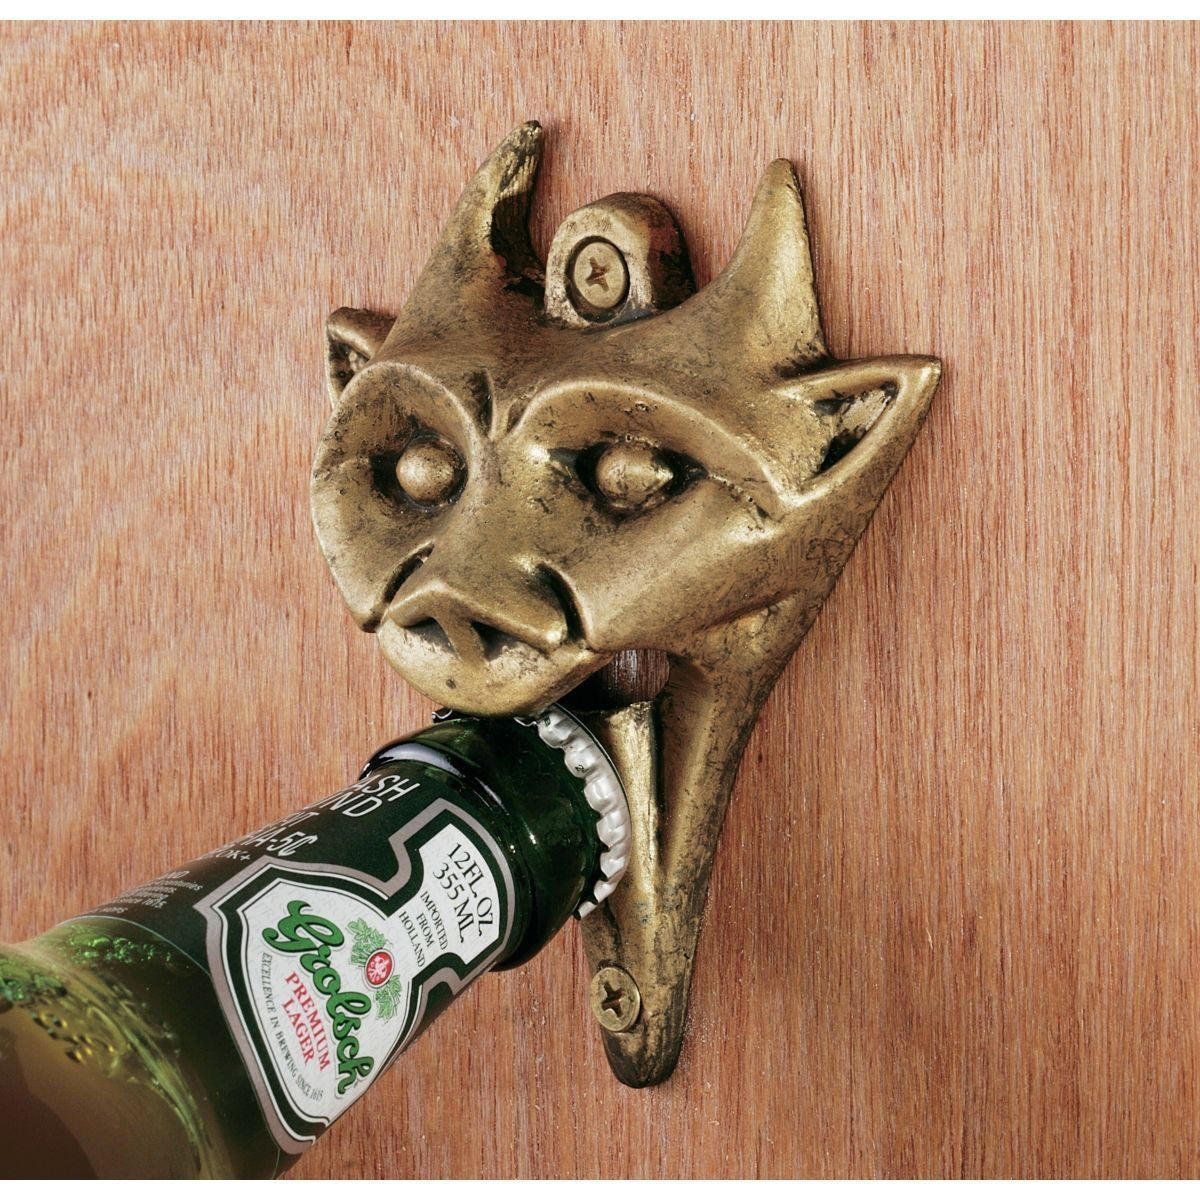 The wall mounted gargoyle bottle opener 1558 httpwww the wall mounted gargoyle bottle opener 1558 httpstrictlymancave amipublicfo Image collections